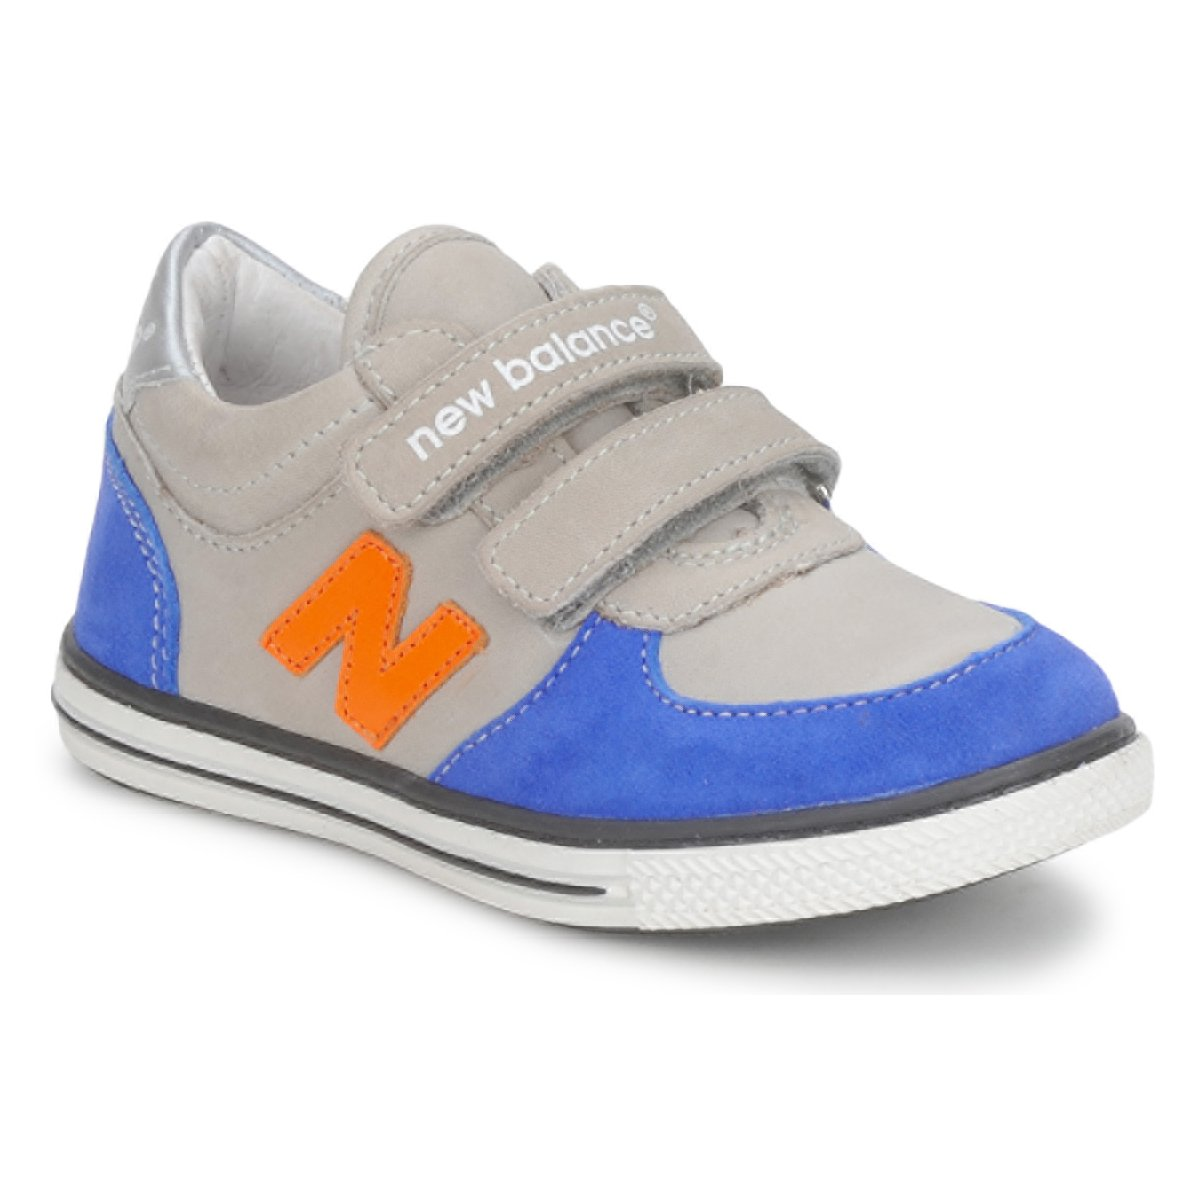 7aab0450069 New Balance Archives - Sko Mekka